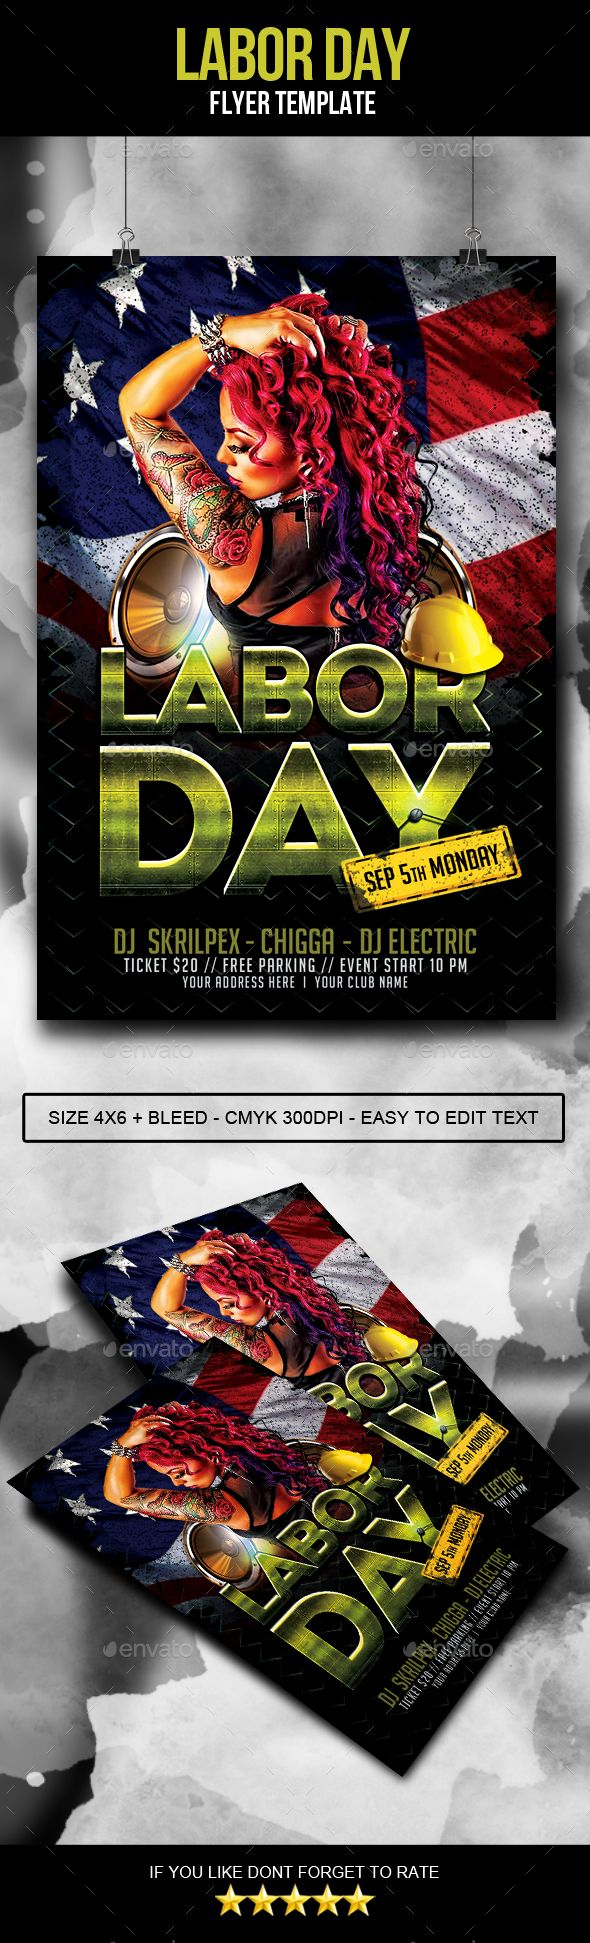 Buy Labor Day Flyer By AyumaDesign On GraphicRiver. This Flyer Is Perfect  For Celebrate Your Event In Labor Day.